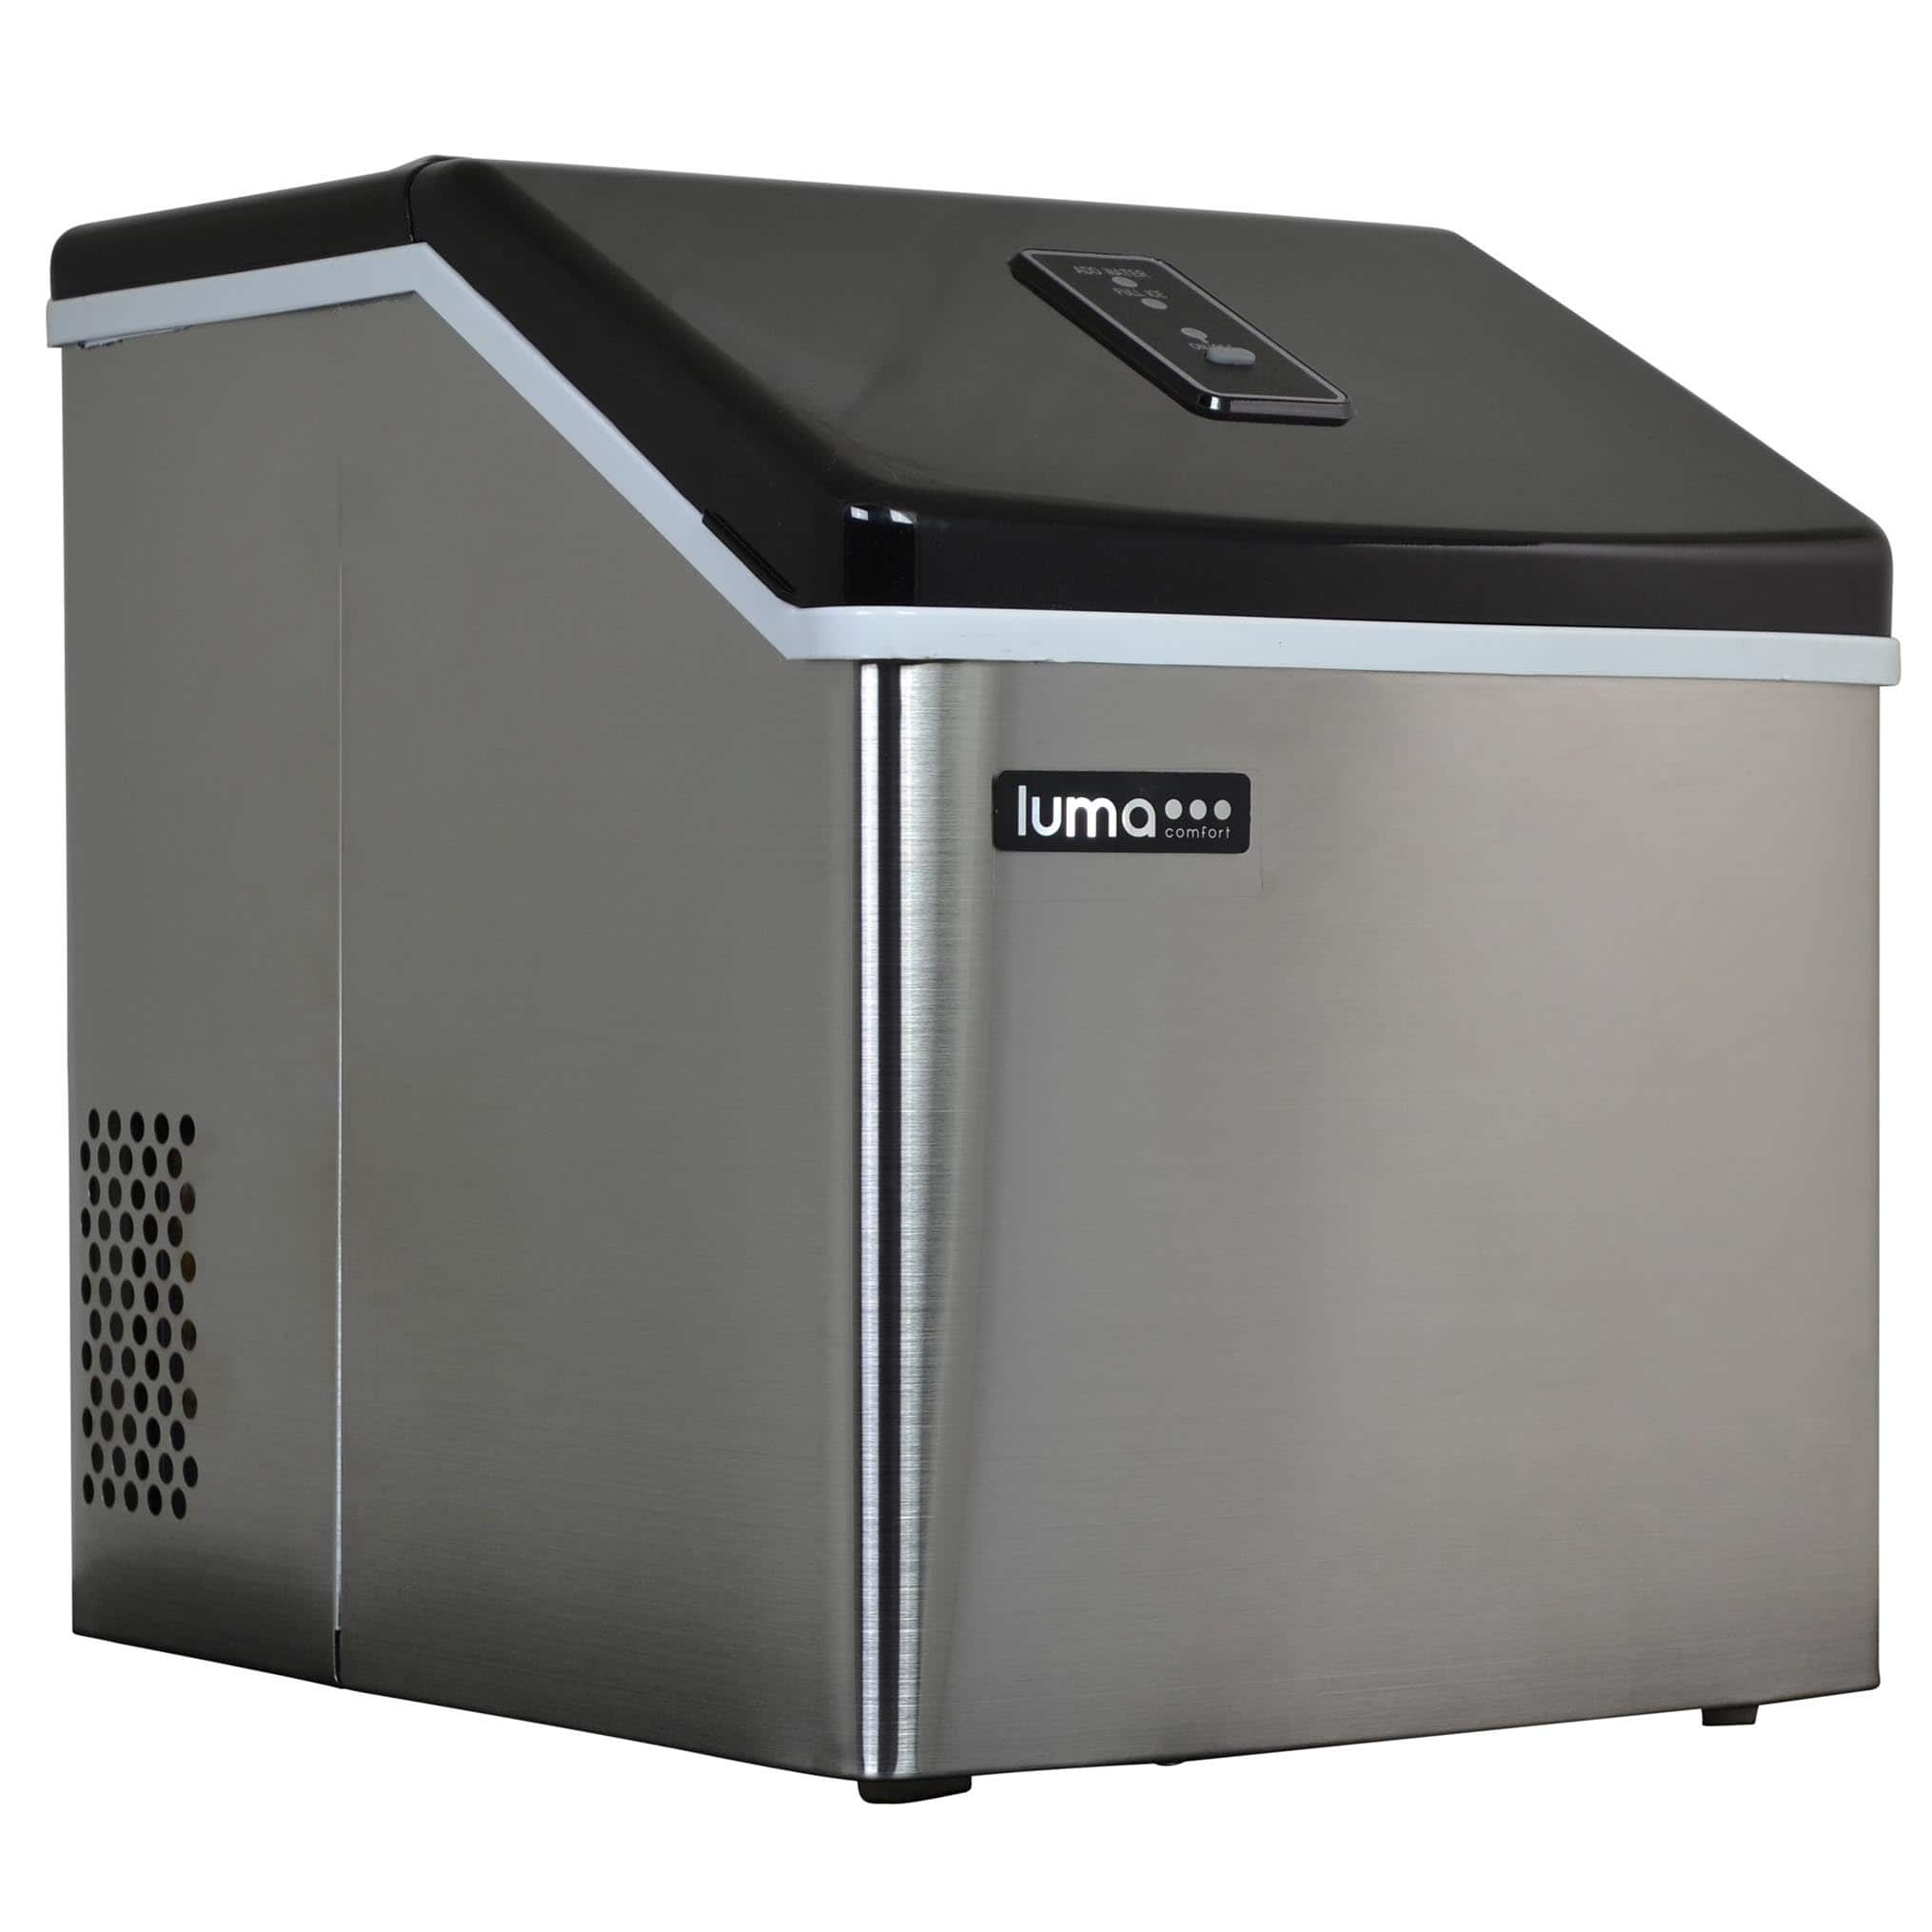 Luma Comfort Portable Clear Ice Maker, 28lb Daily Production - Slow Melting Ice